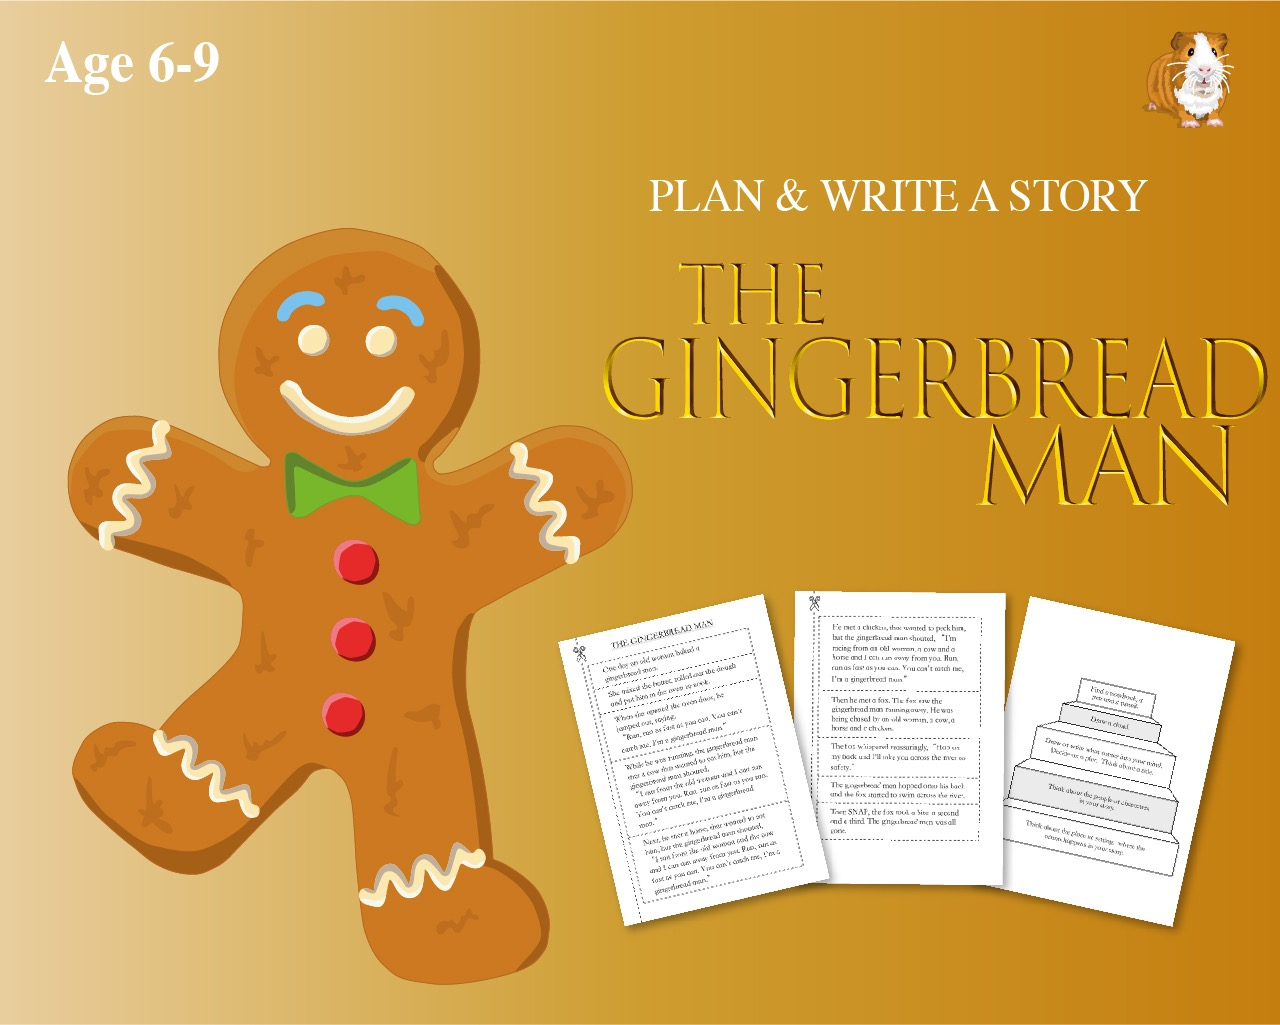 Cut Out And Write The Story Of 'The Gingerbread Man' (6-9 years)